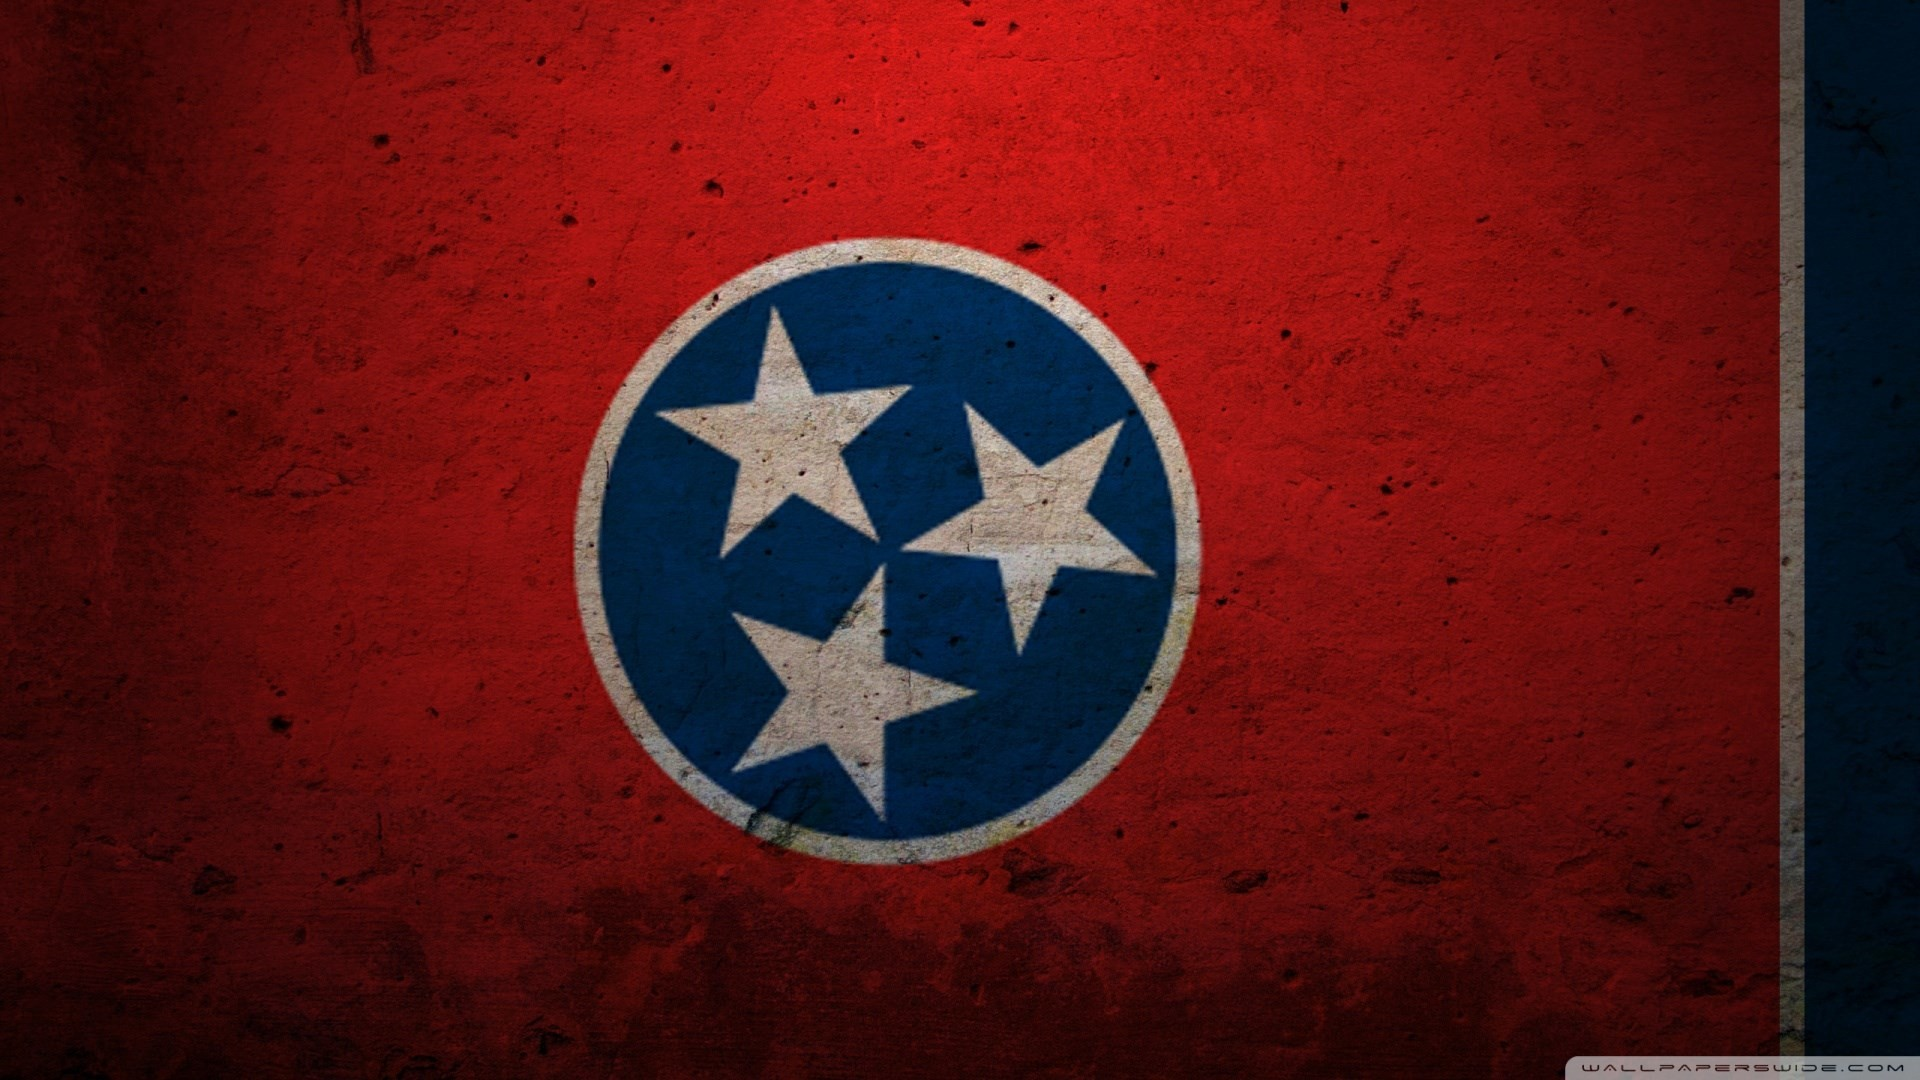 Res: 1920x1080,  Wallpaper Desktop-Flagge von Tennessee, 361 kB - Hurley Chester  JPG 361 kB